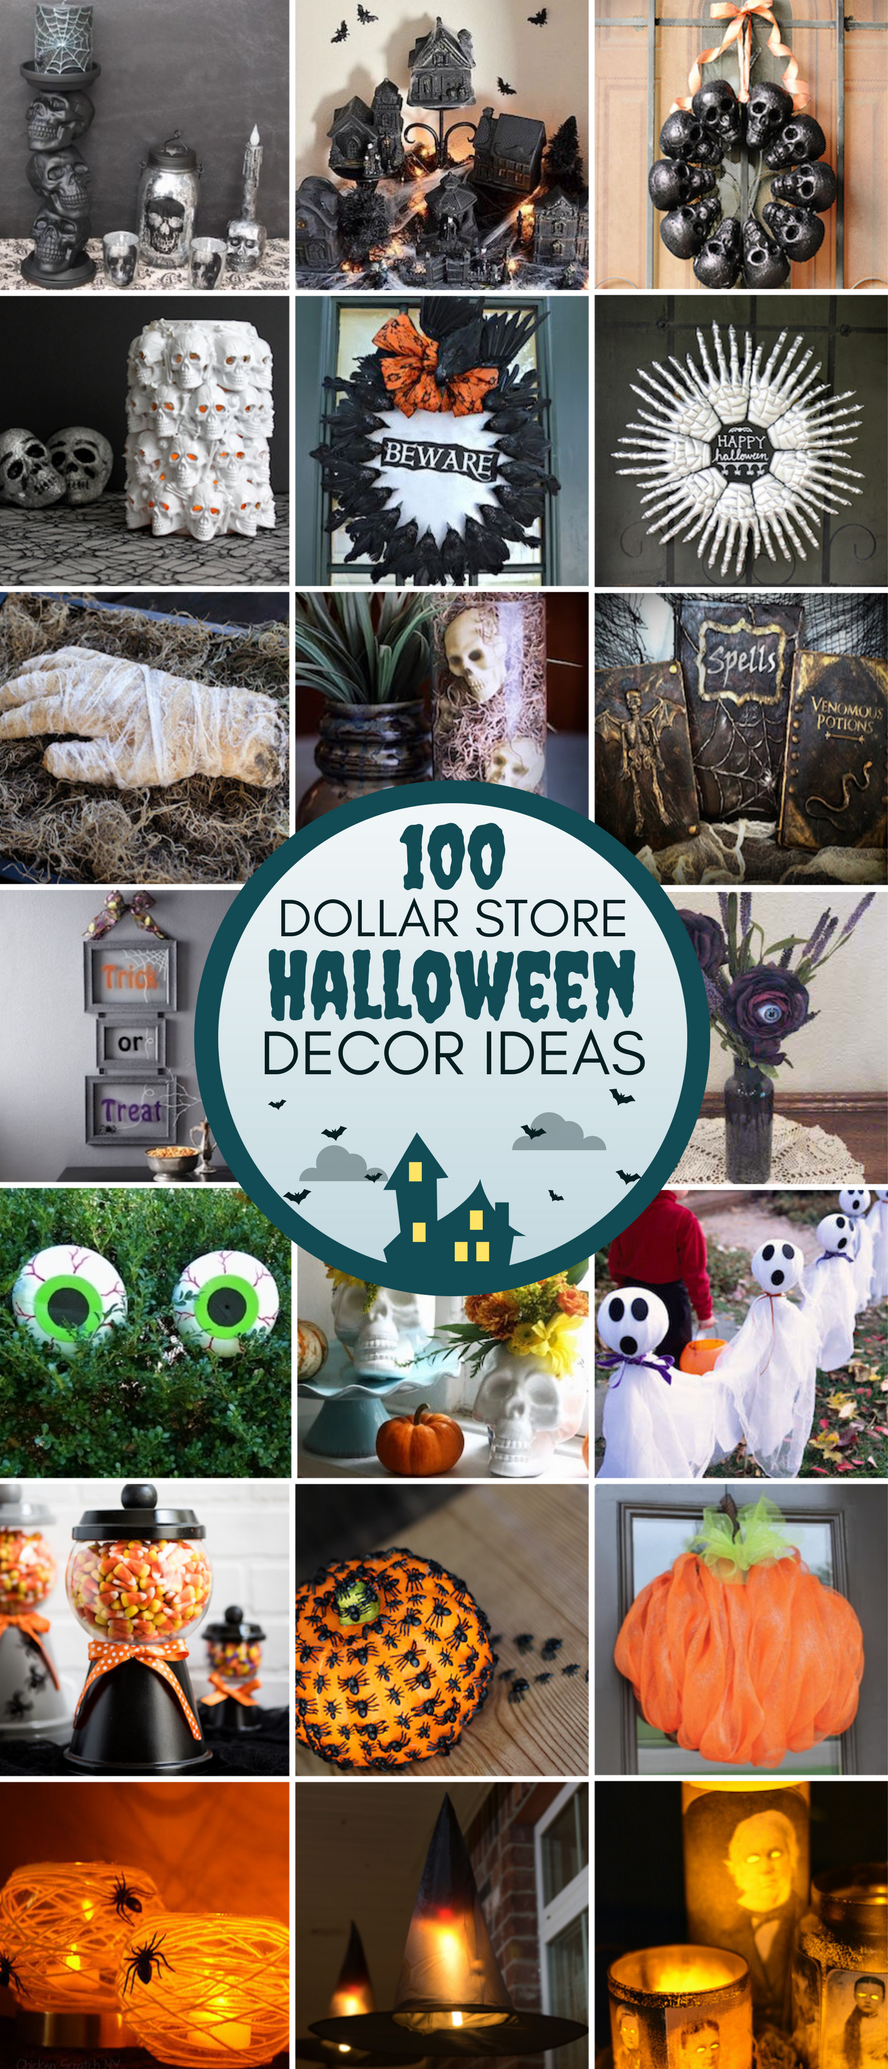 100 Dollar Store Halloween Decorations Prudent Penny Pincher